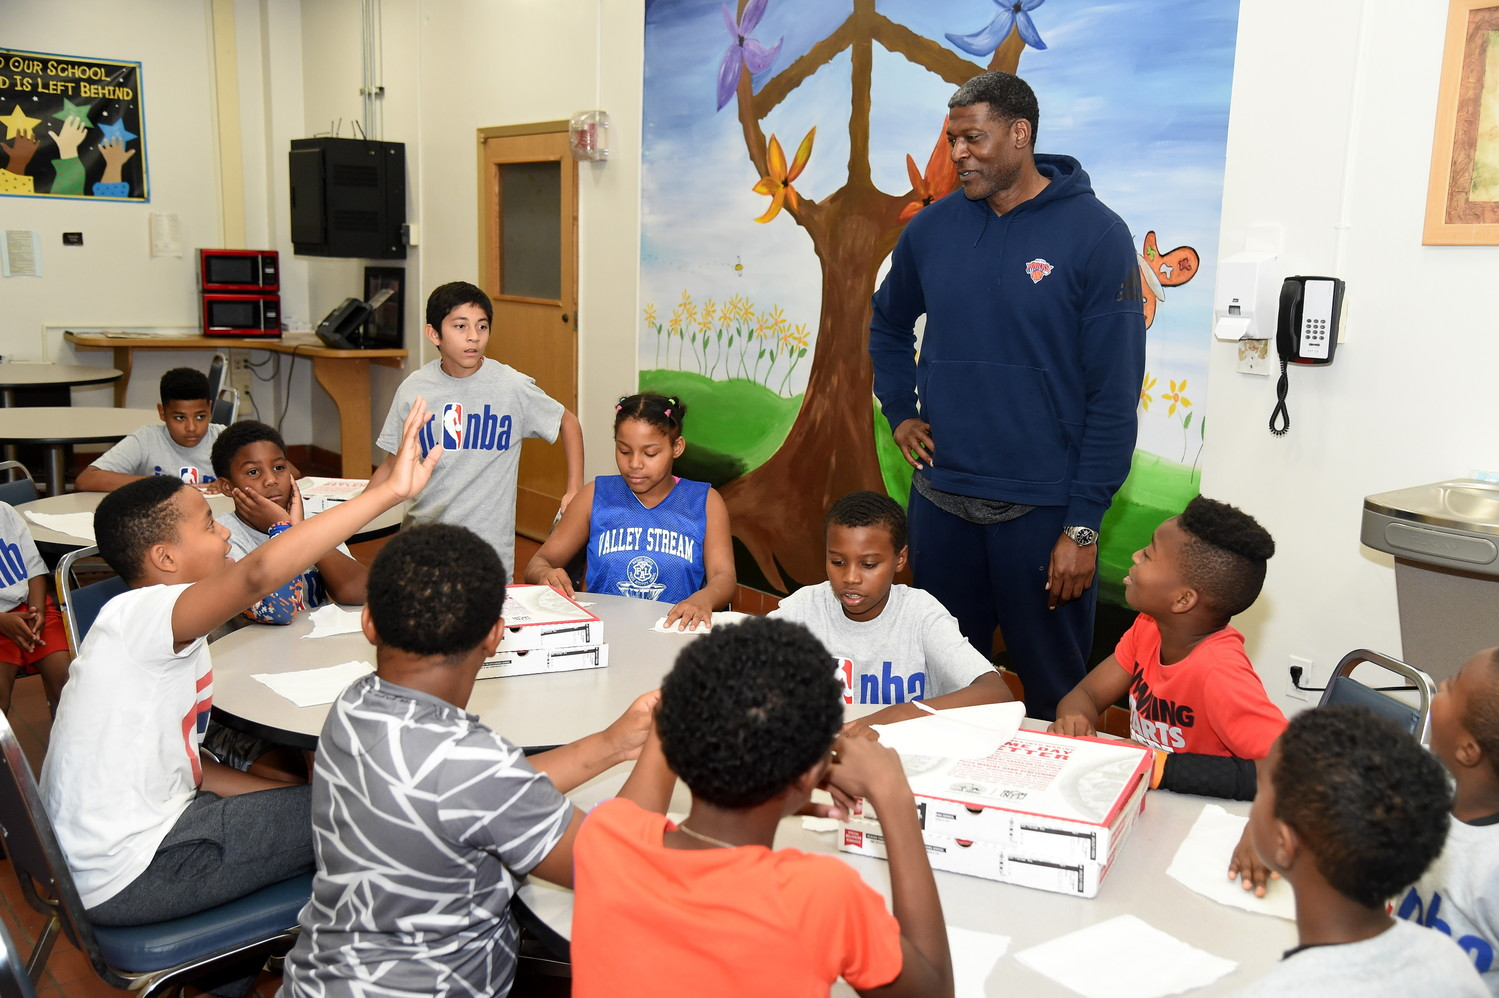 Larry Johnson, right, had pizza with a group of kids who played during the Knicks' halftime show in their game against the Washington Wizards on Oct. 13.